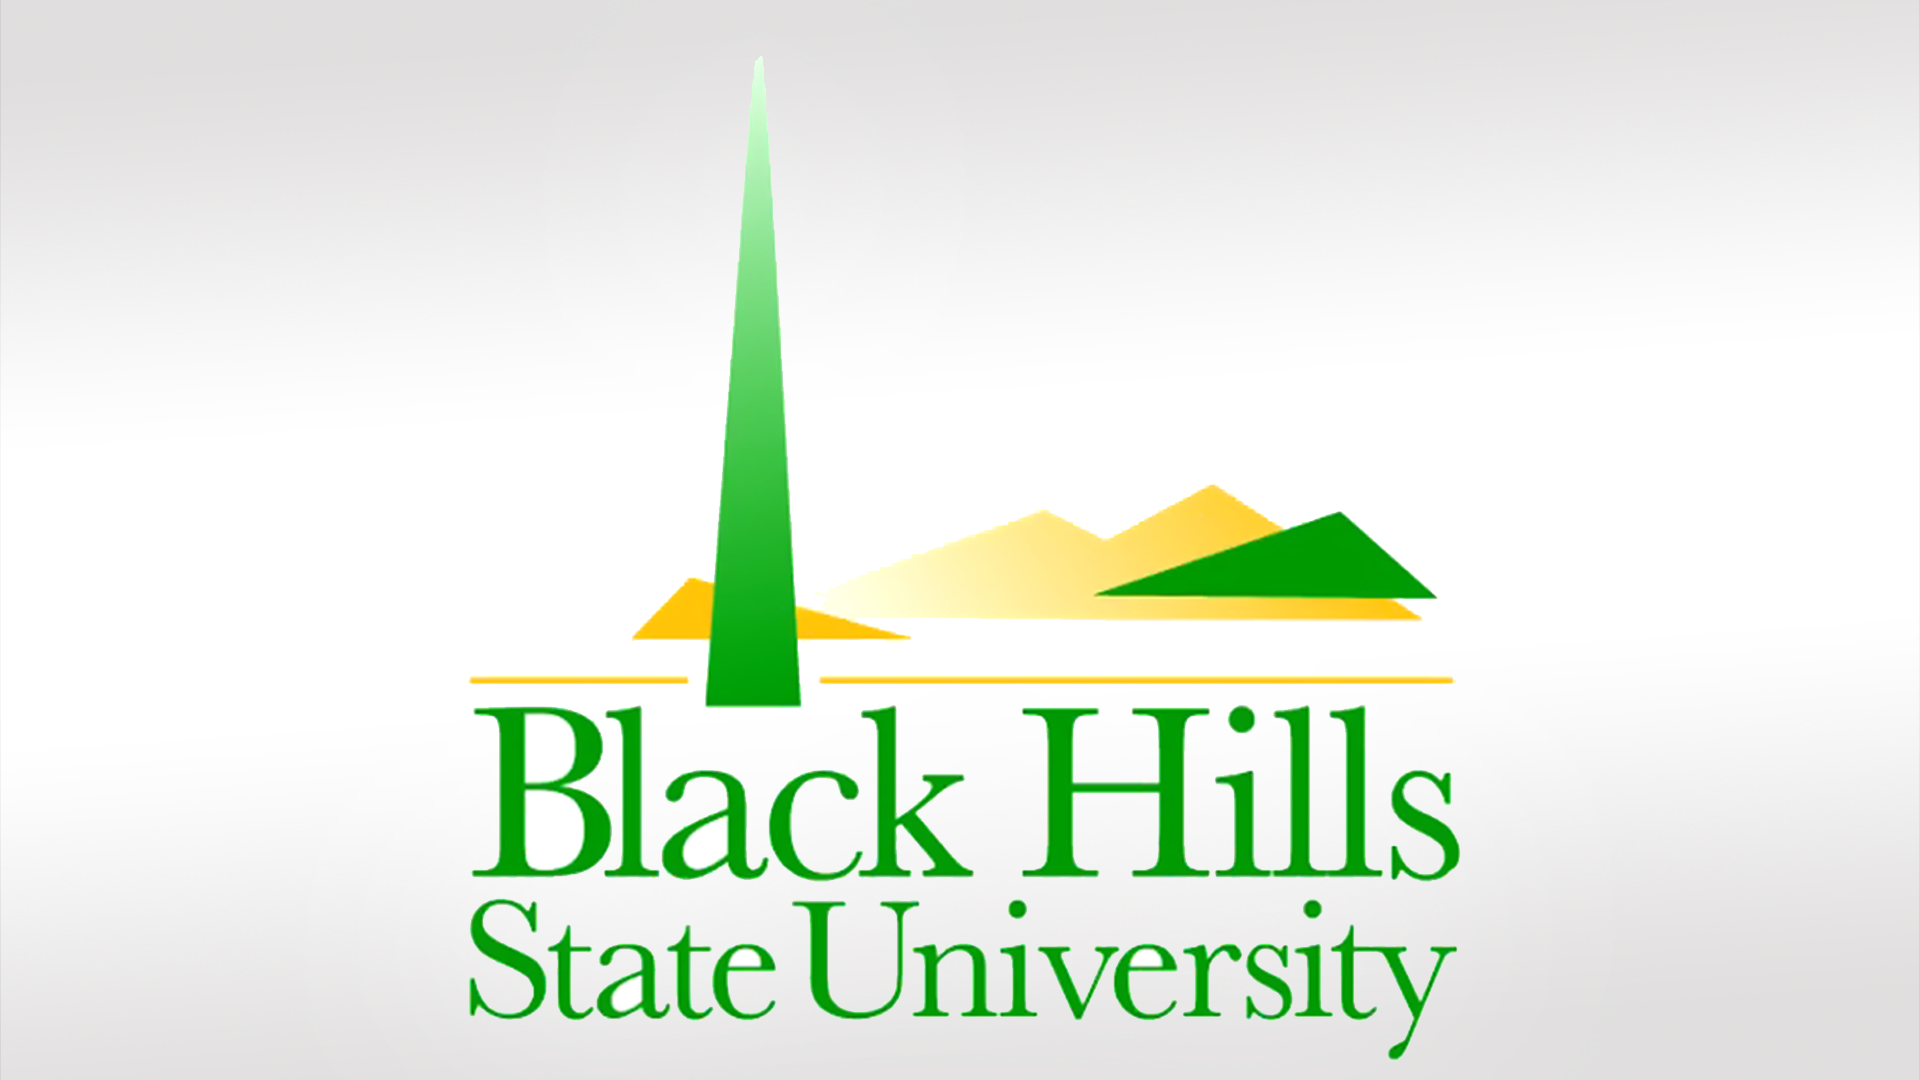 KELO Black Hills State University logo